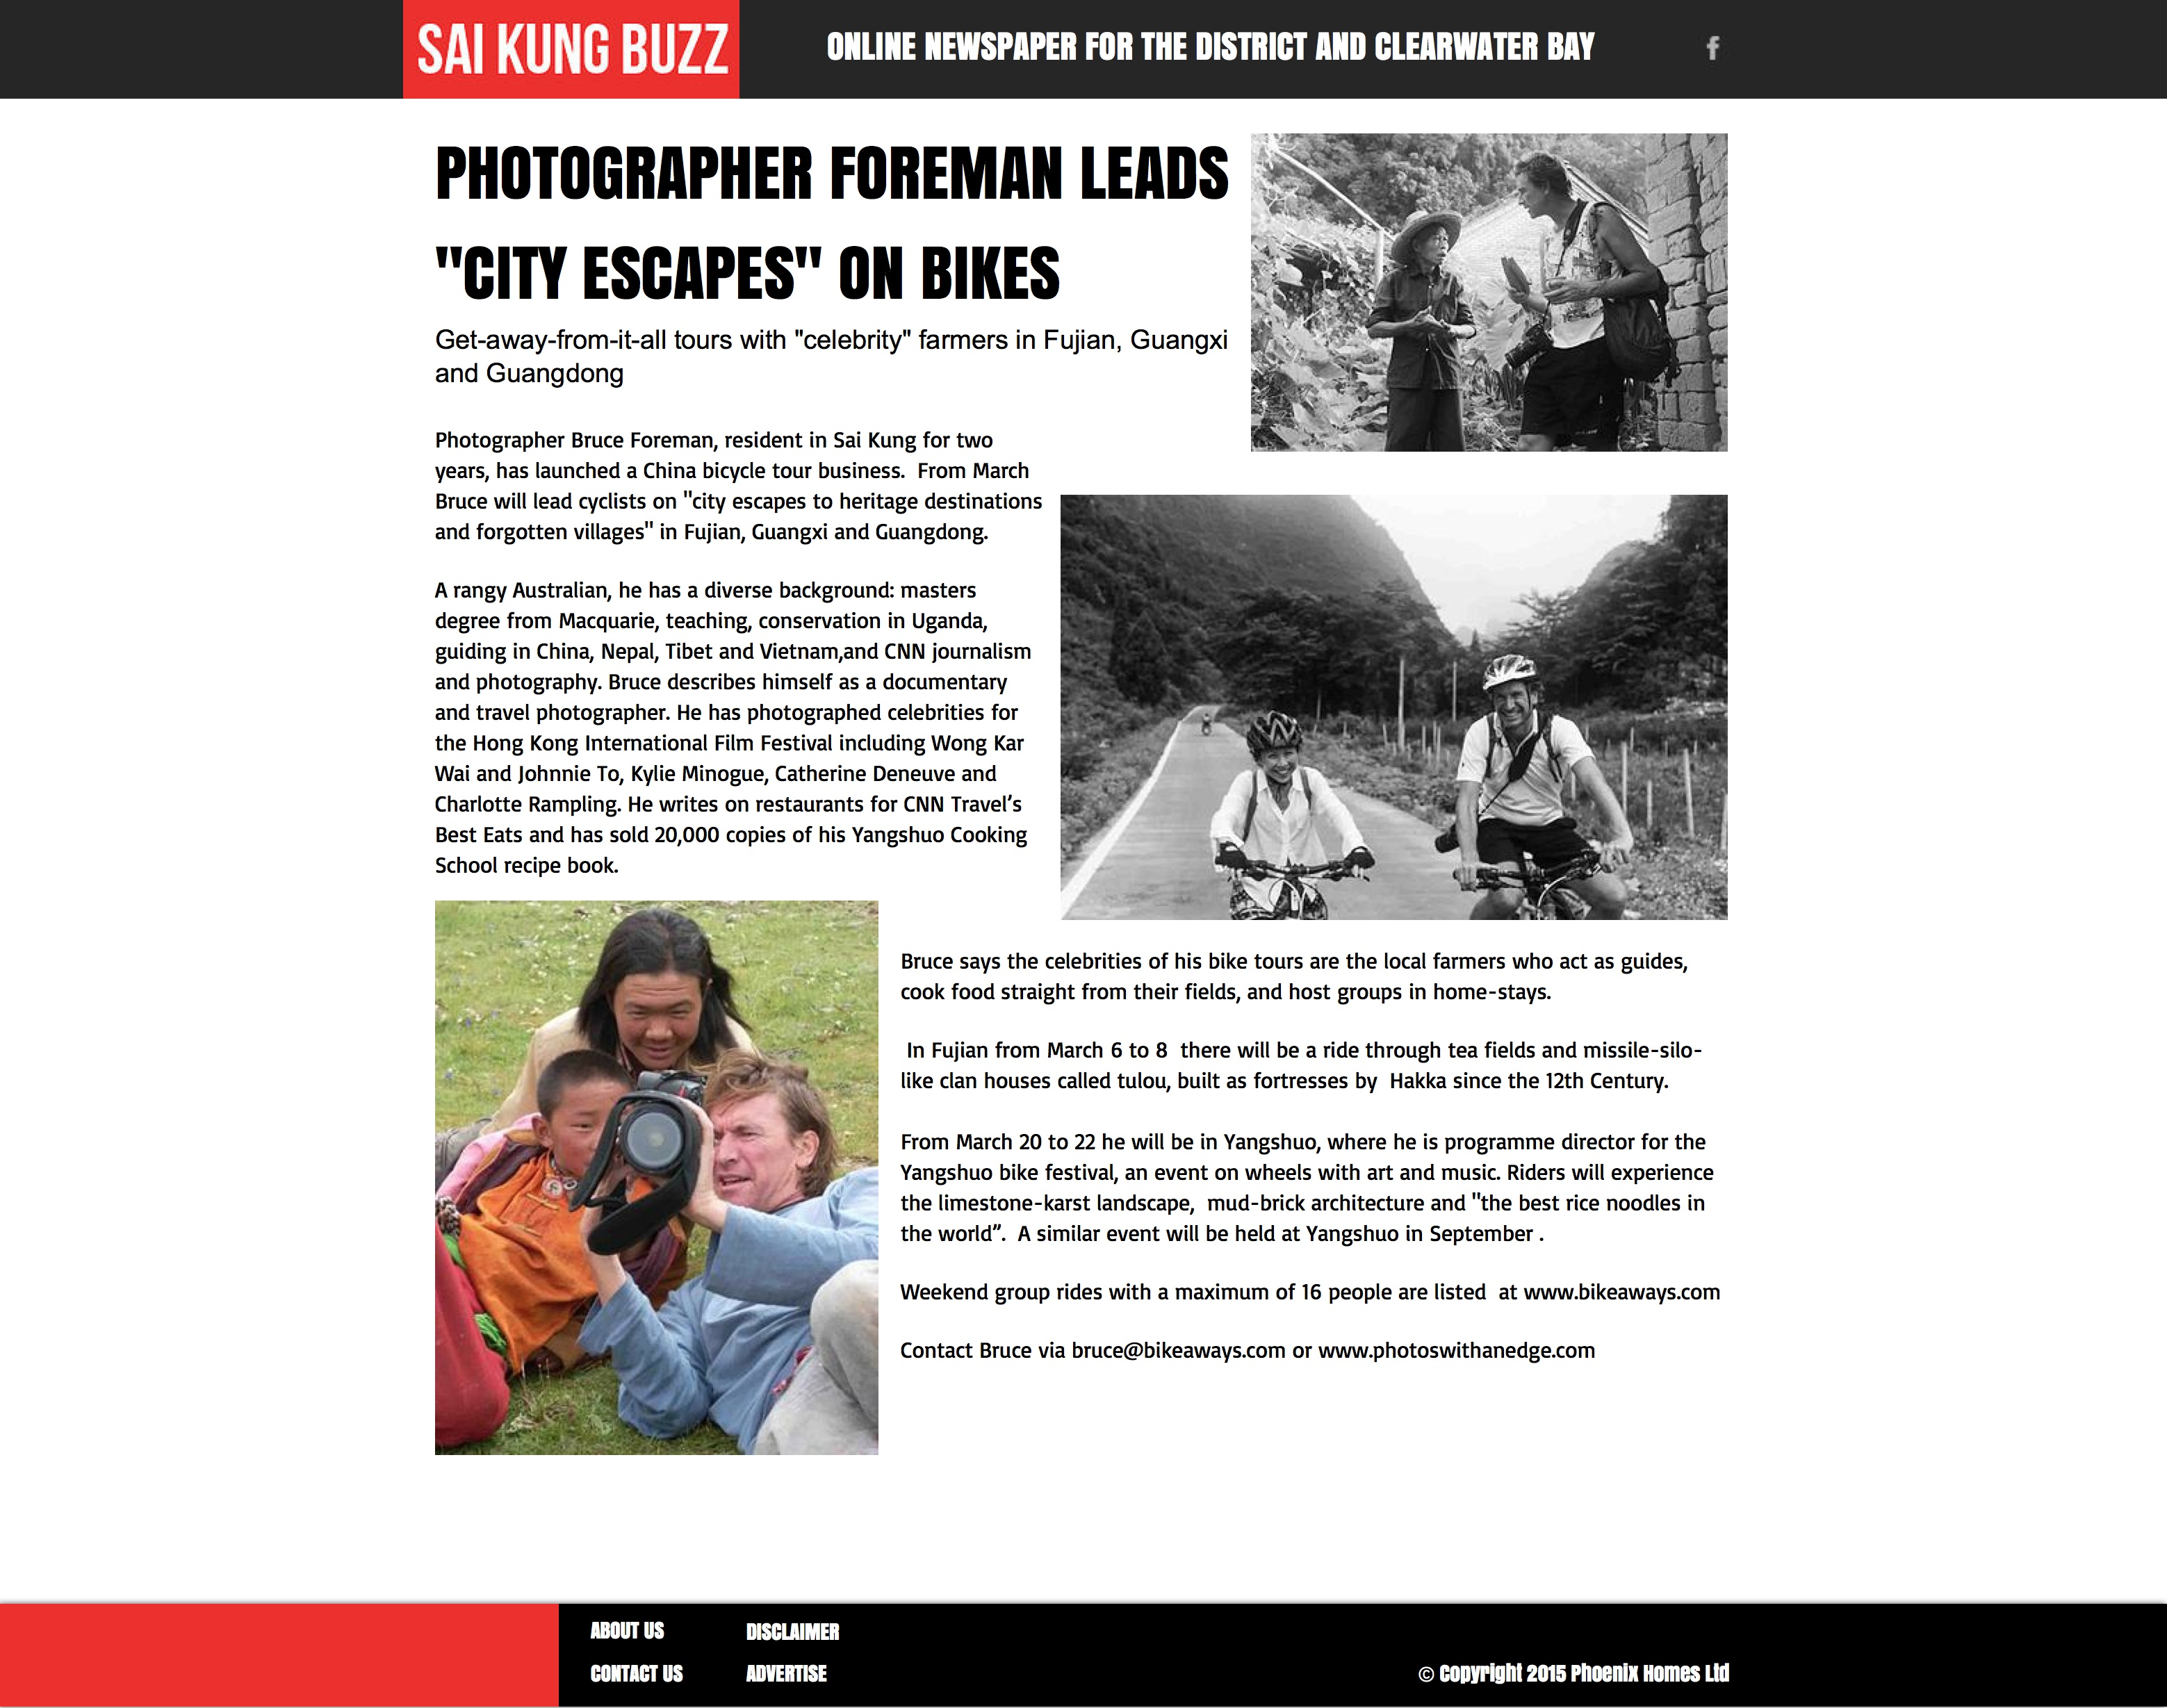 Sai Kung Buzz | Photographer Foreman leads 'City Escapes' on bikes